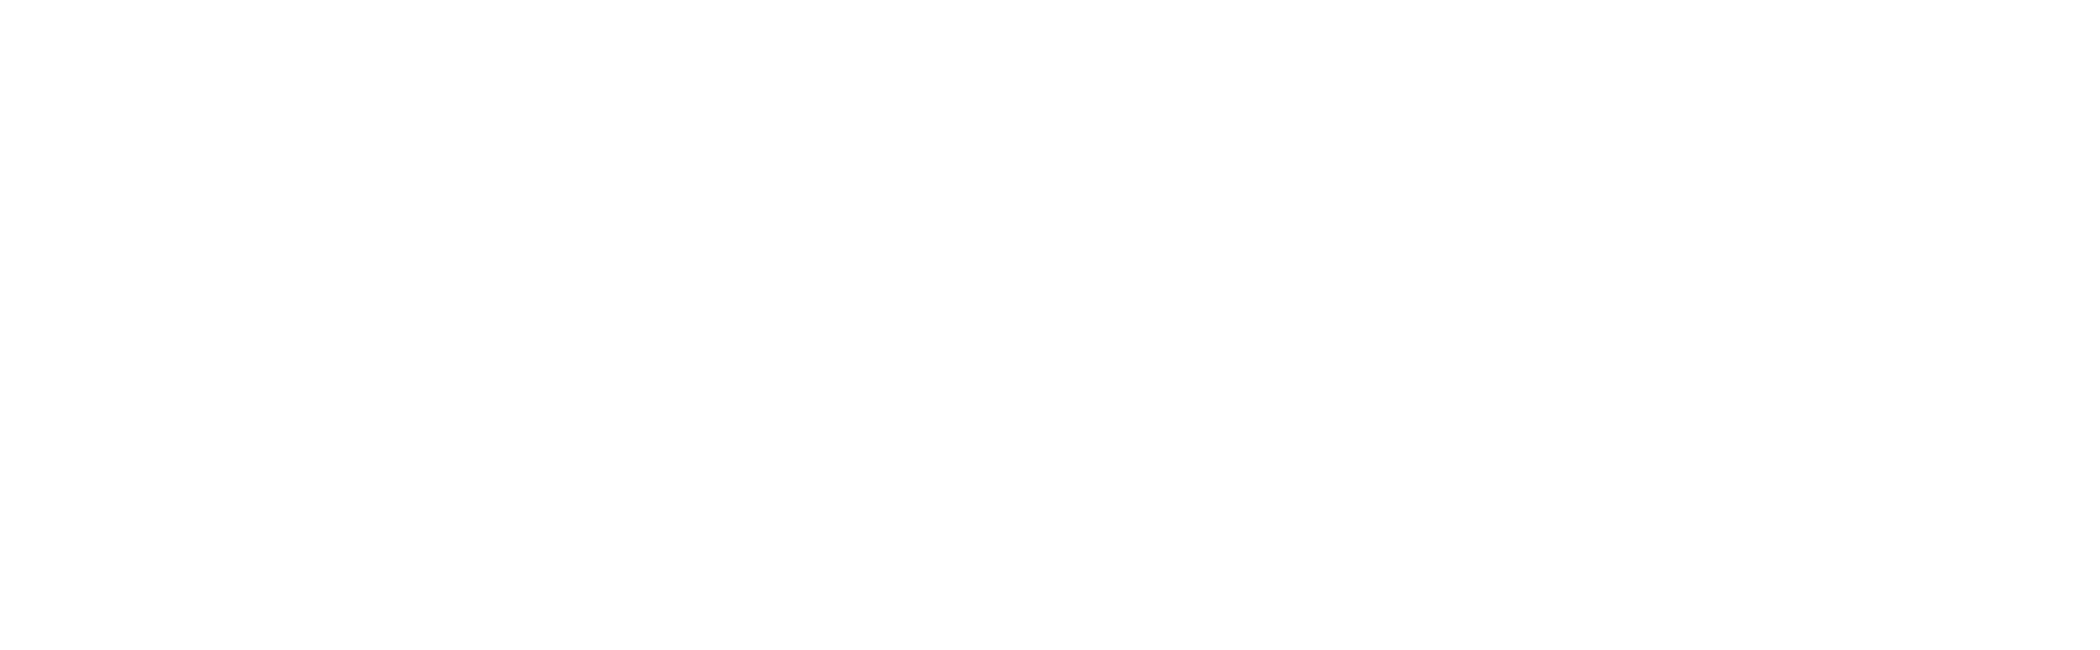 Amazon Music Logo - Highest Quality Streaming Audio | Amazon Music HD